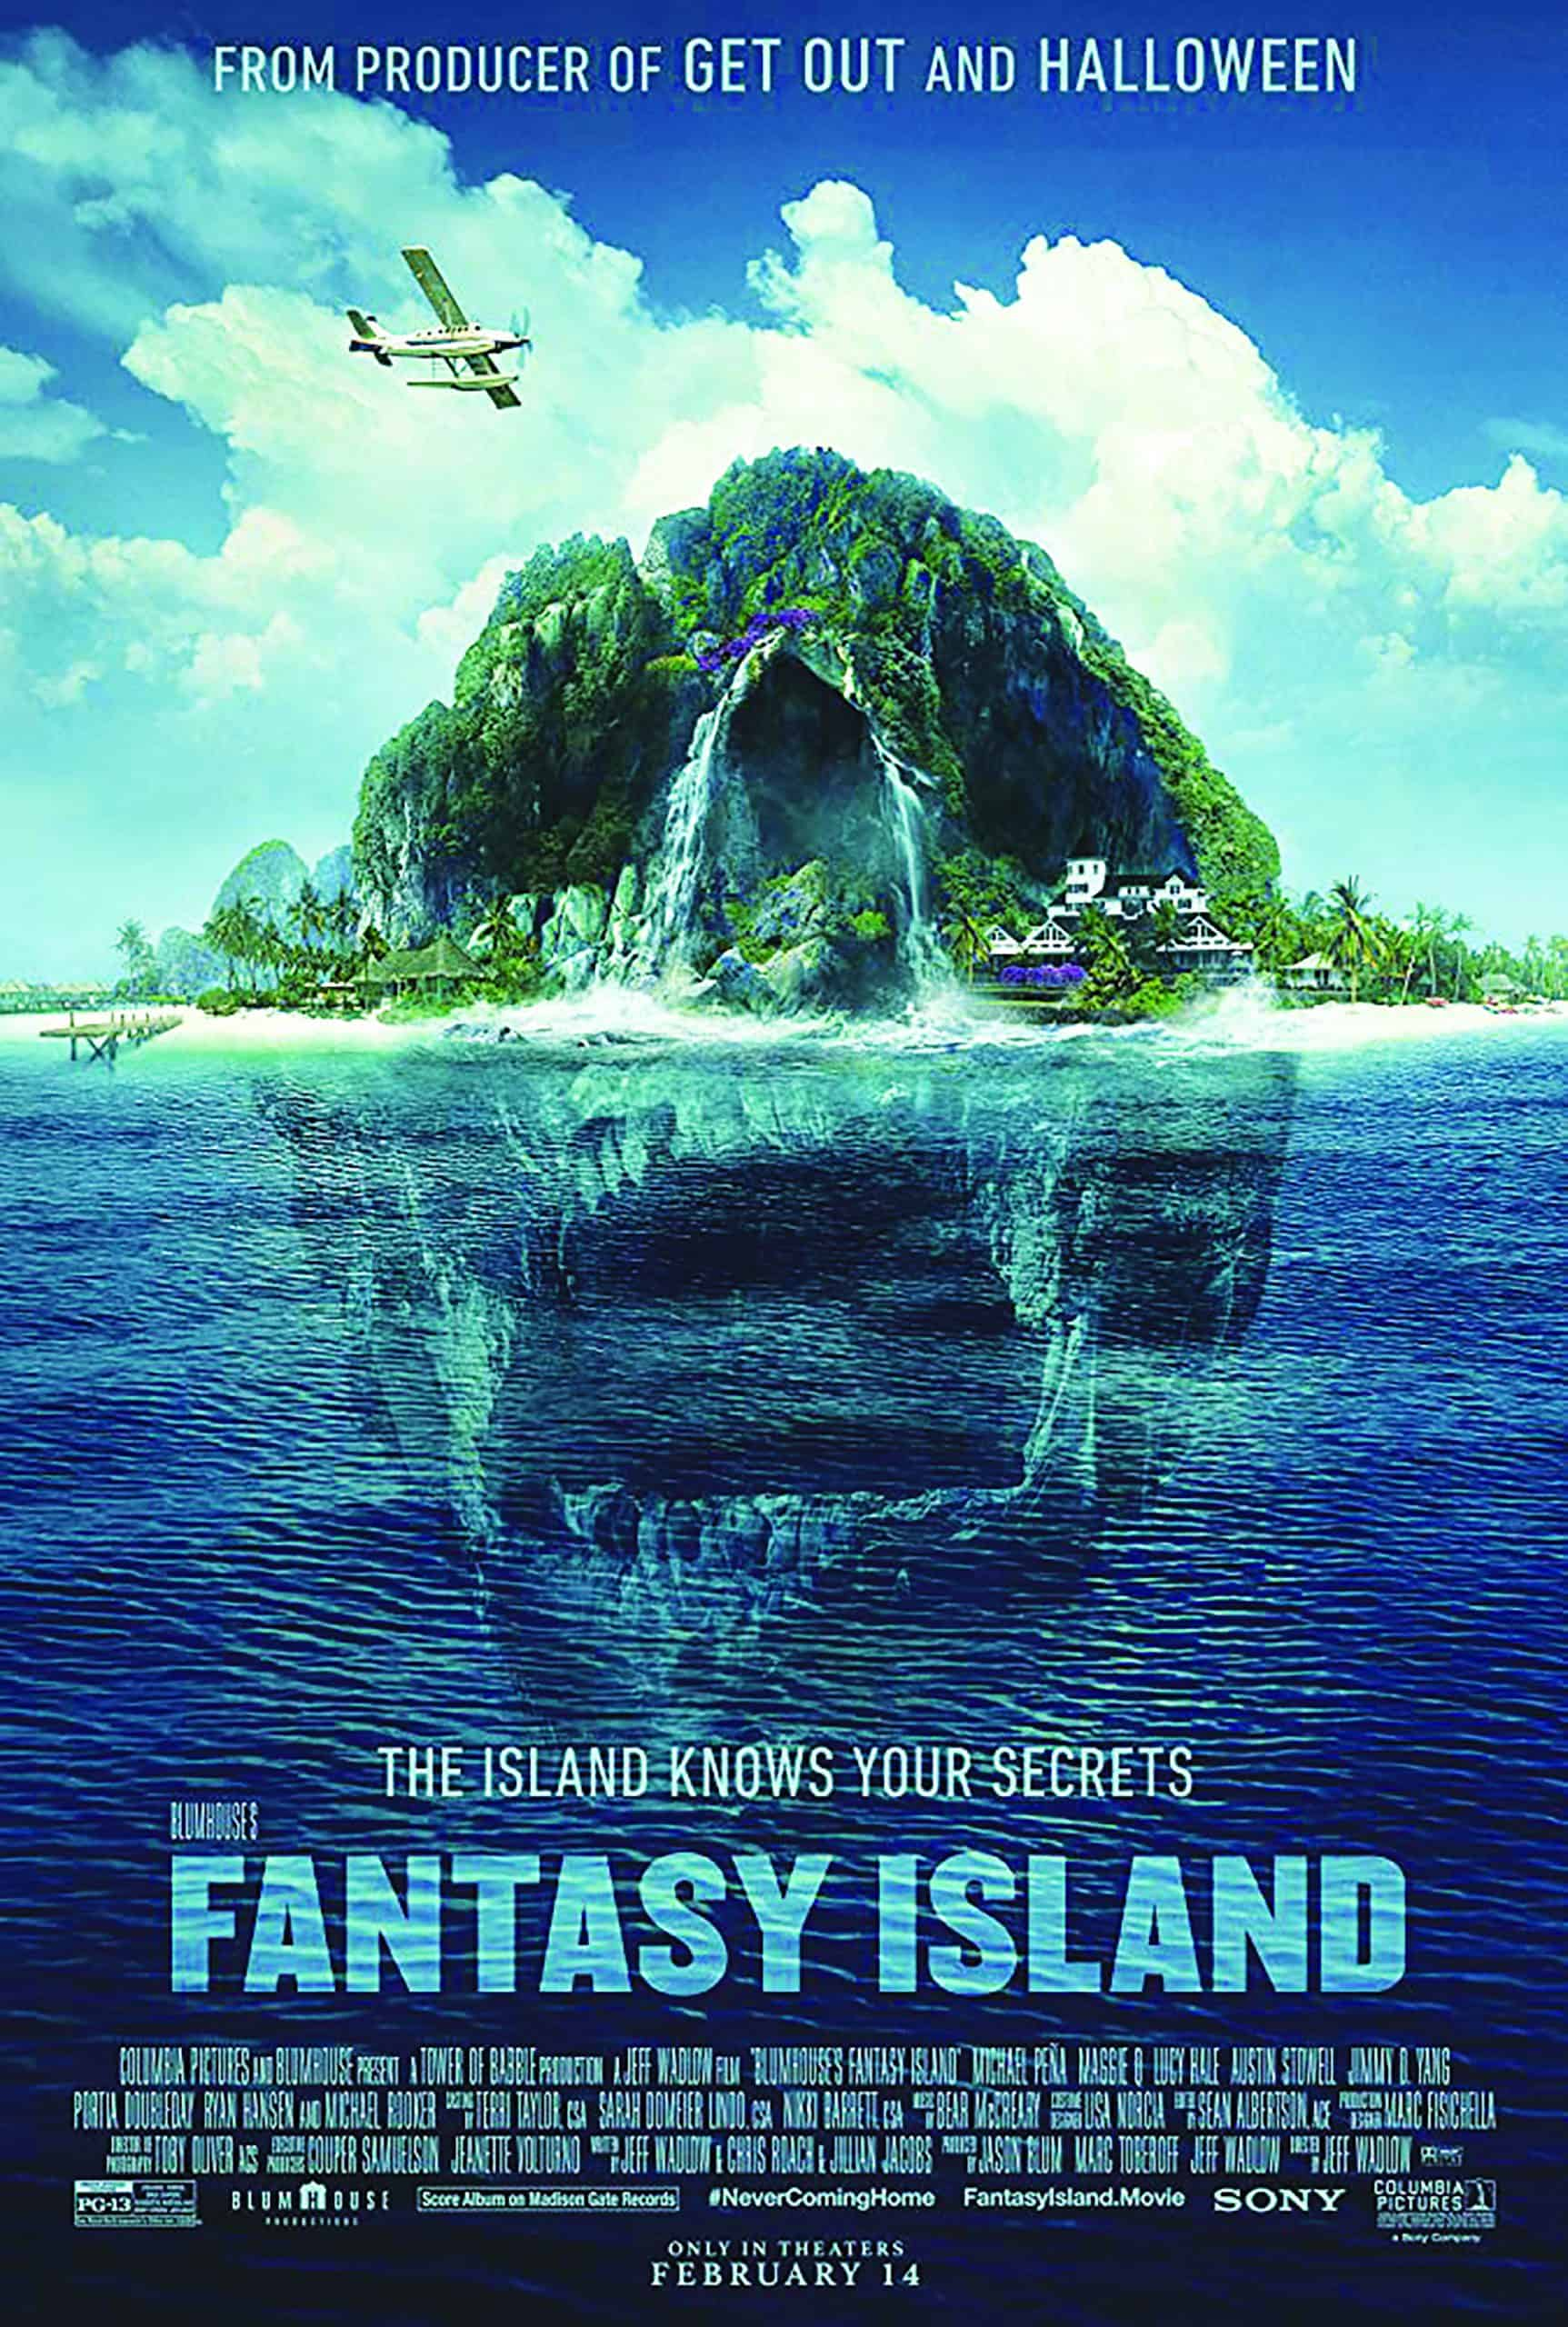 fantasy-island-movie-review-shows-spark-at-first-only-to-be-overpowered-later